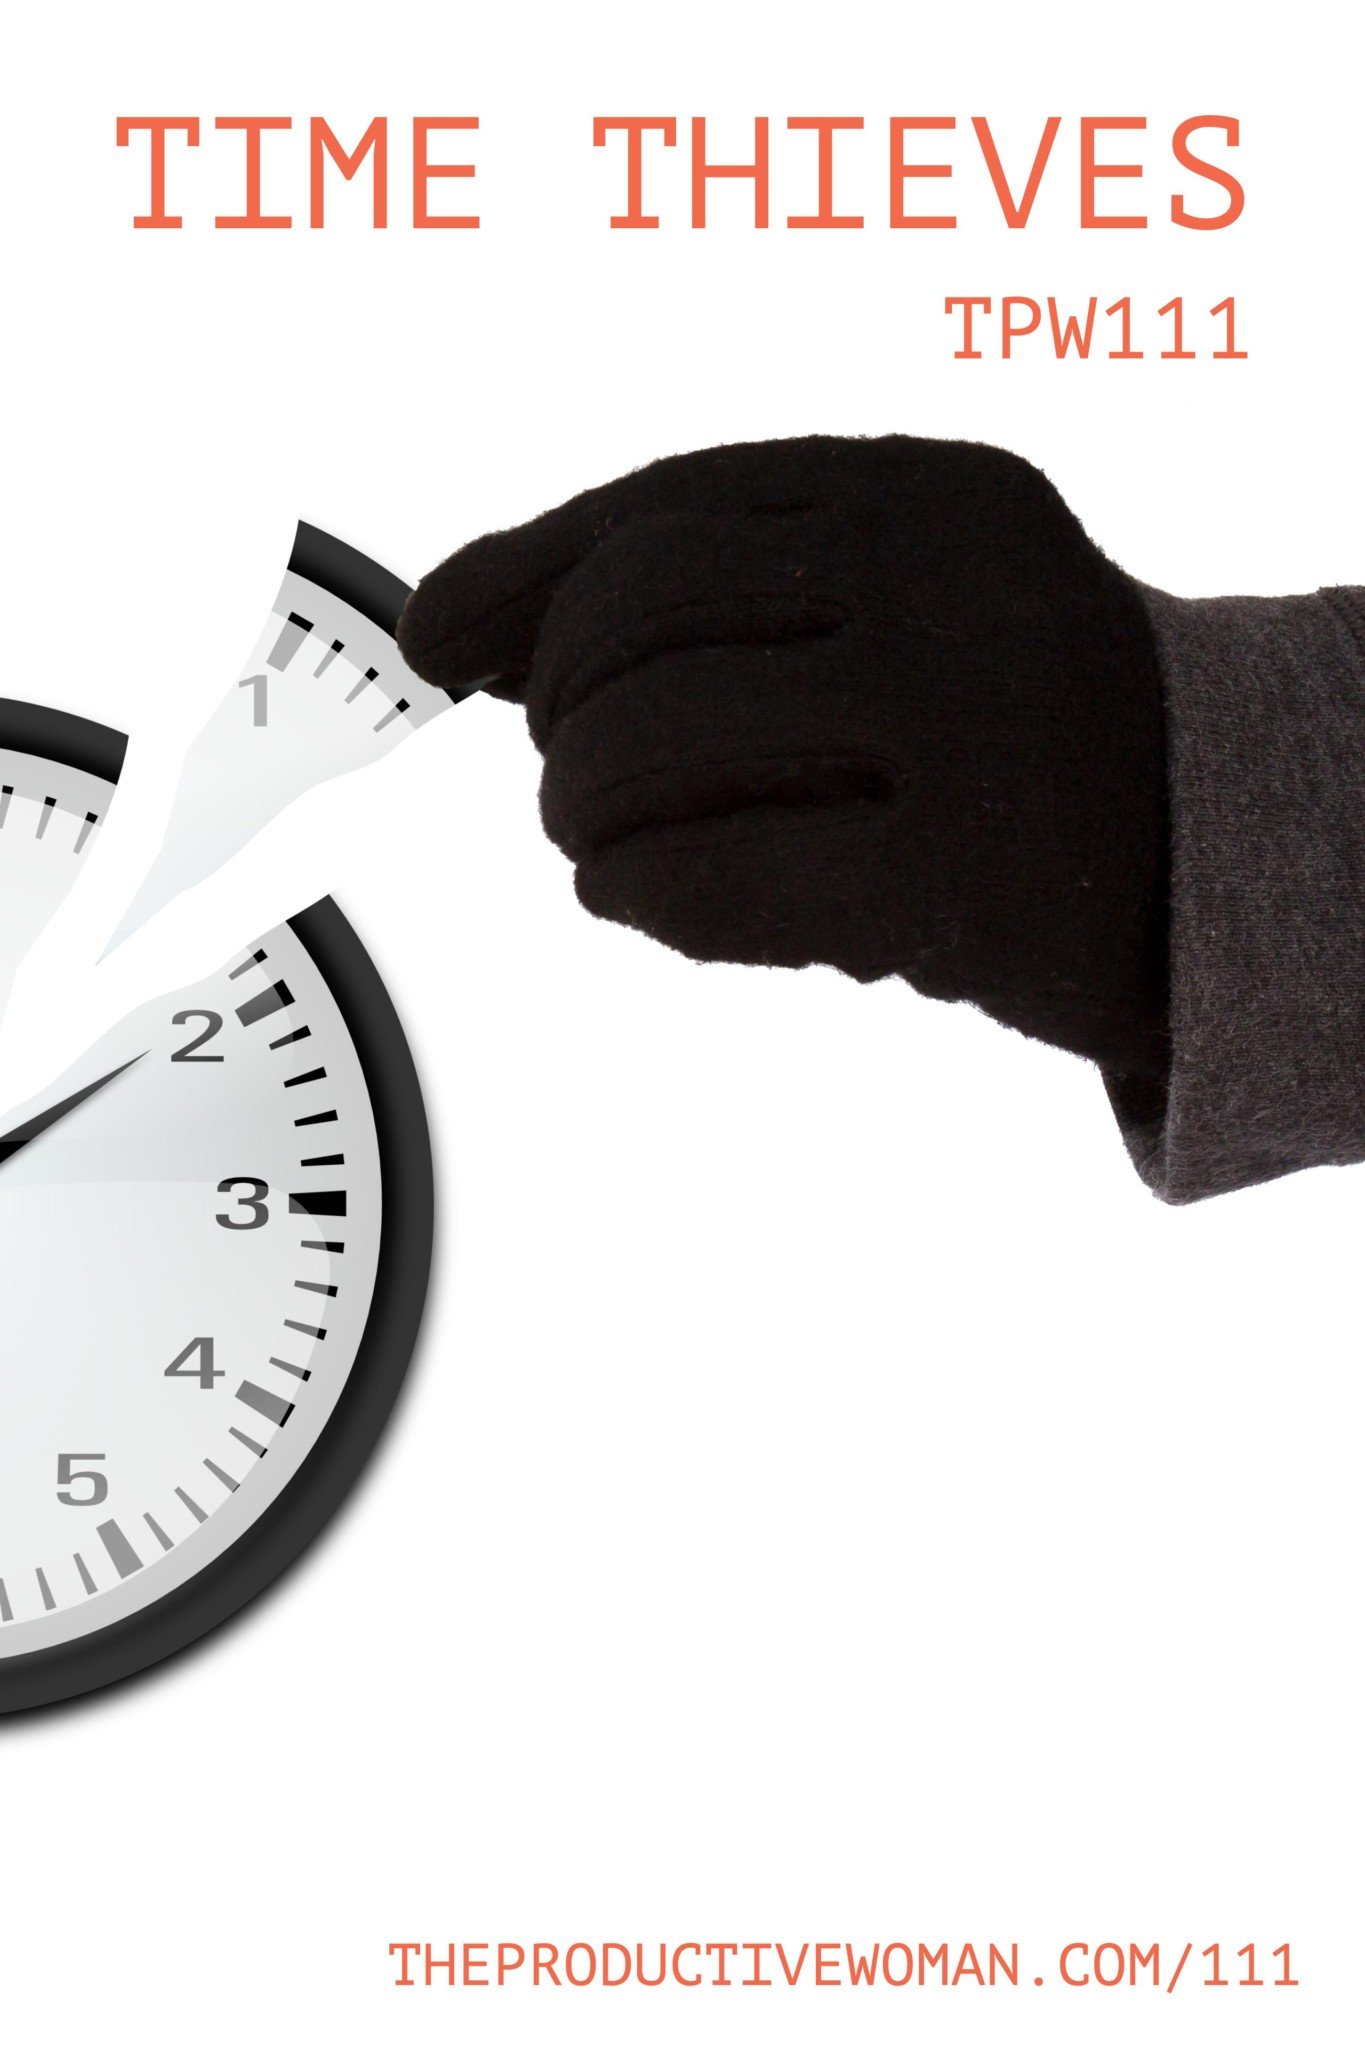 In episode 111 of The Productive Woman, we look at time thieves--external and internal--that steal time we would otherwise spend on what really matters to us. Find it at TheProductiveWoman.com/111.